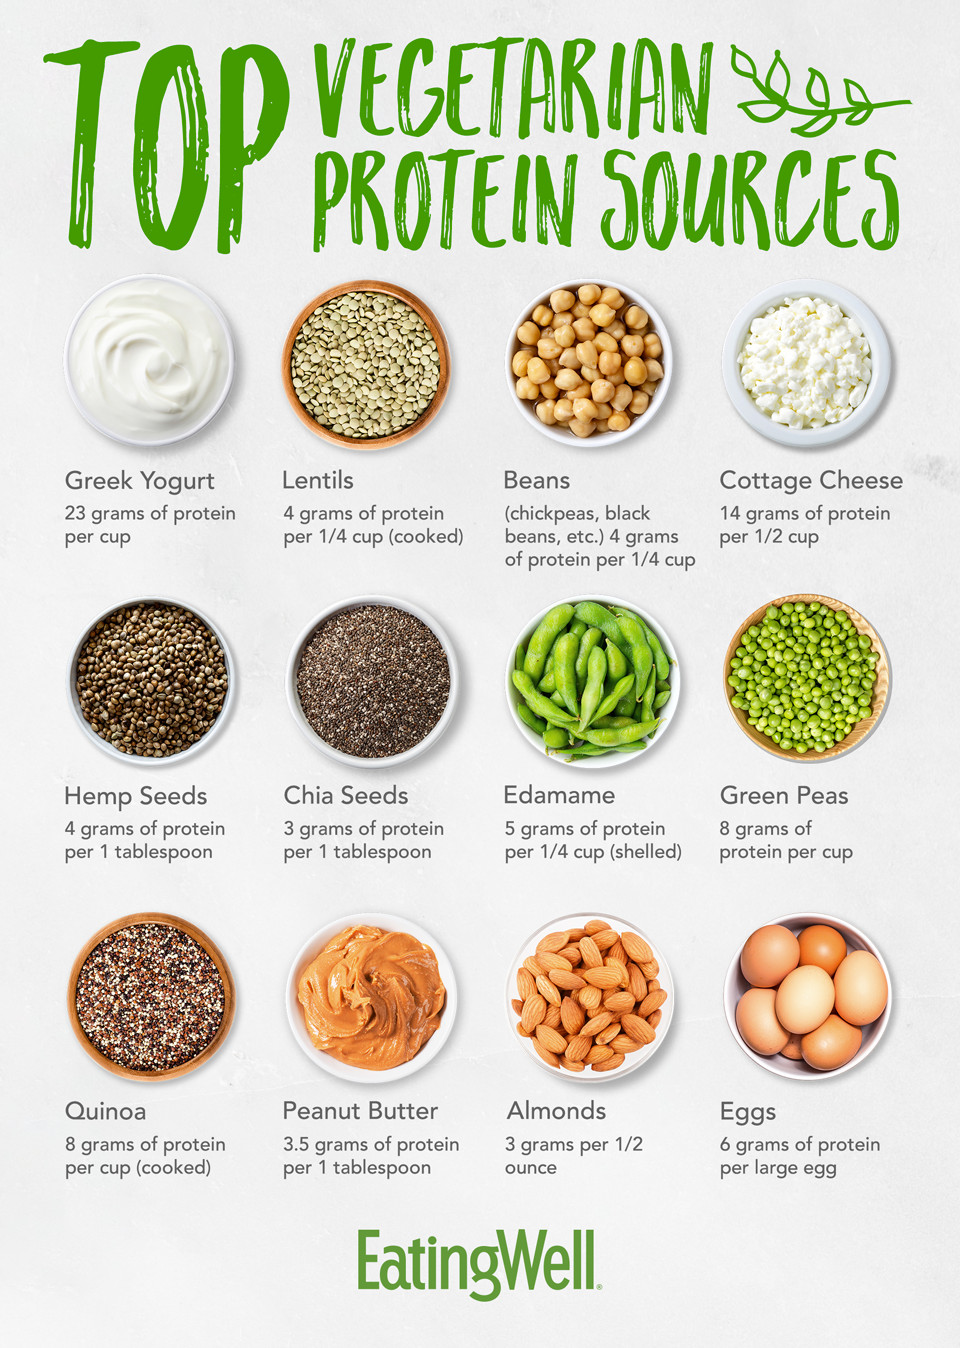 Protein Vegetarian Diets  Top Ve arian Protein Sources EatingWell